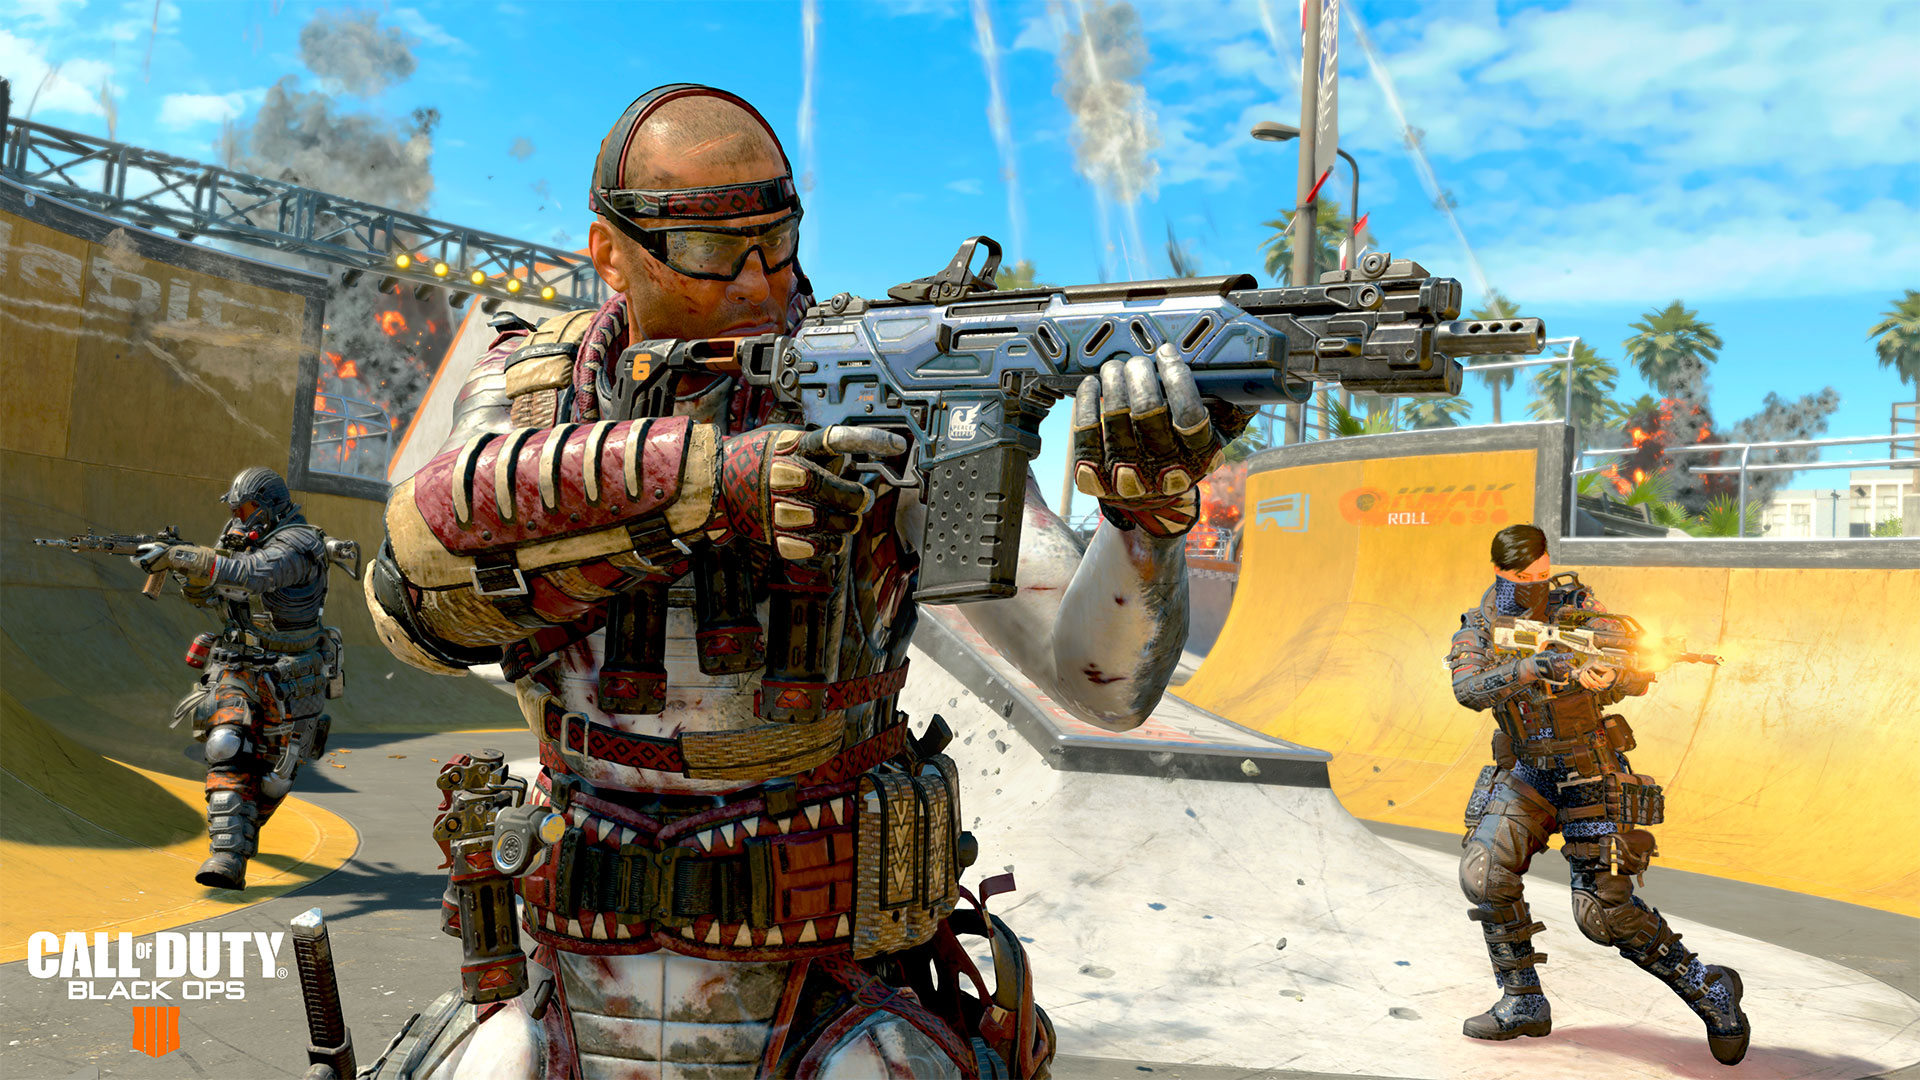 Ride the waves and jump into Call of Duty®: Black Ops 4 Days of